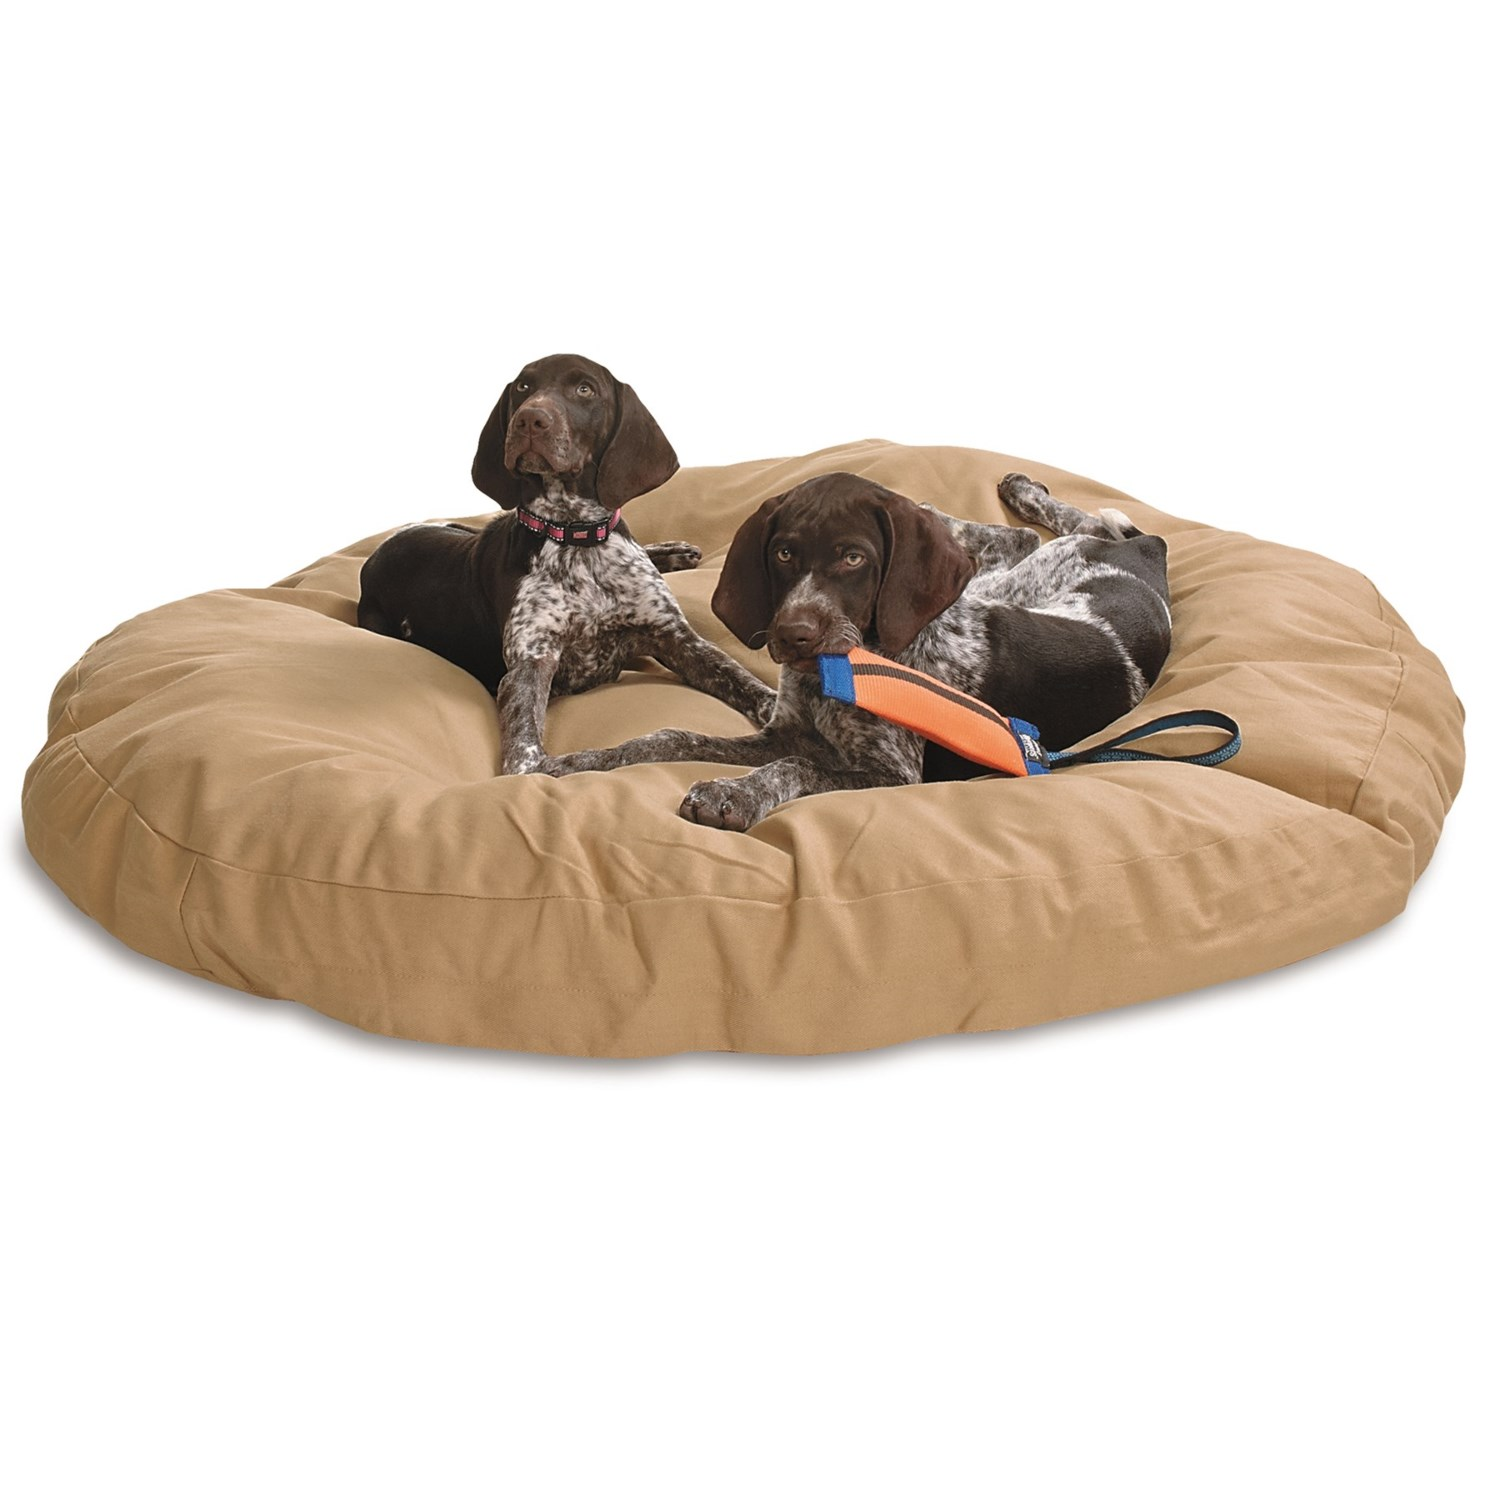 Brilliant Kimlor Jumbo Round Dog Bed 50 Squirreltailoven Fun Painted Chair Ideas Images Squirreltailovenorg